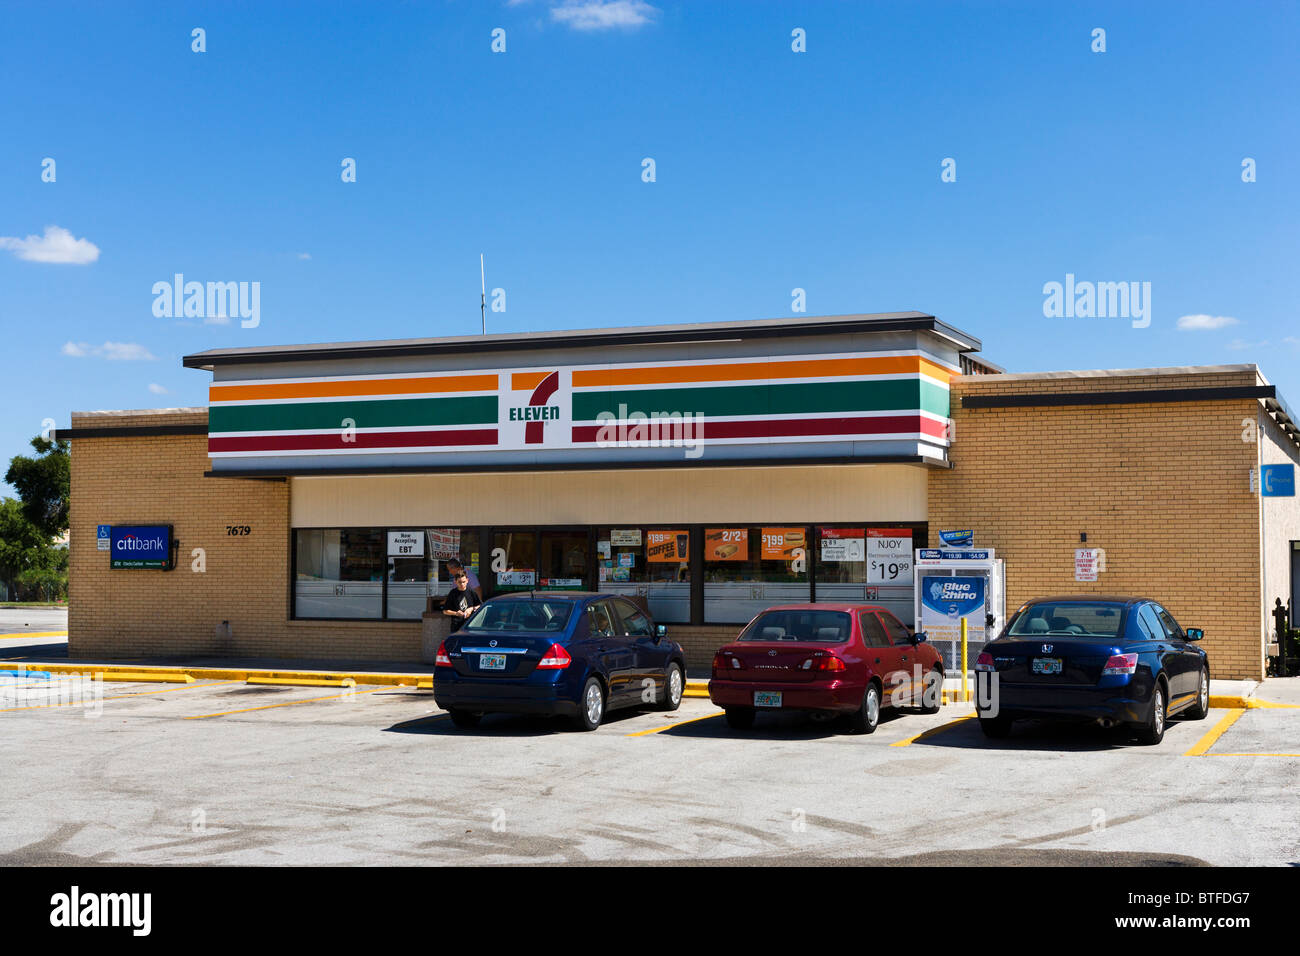 A 7-Eleven convenience store on International Drive, Orlando, Central Florida, USA - Stock Image